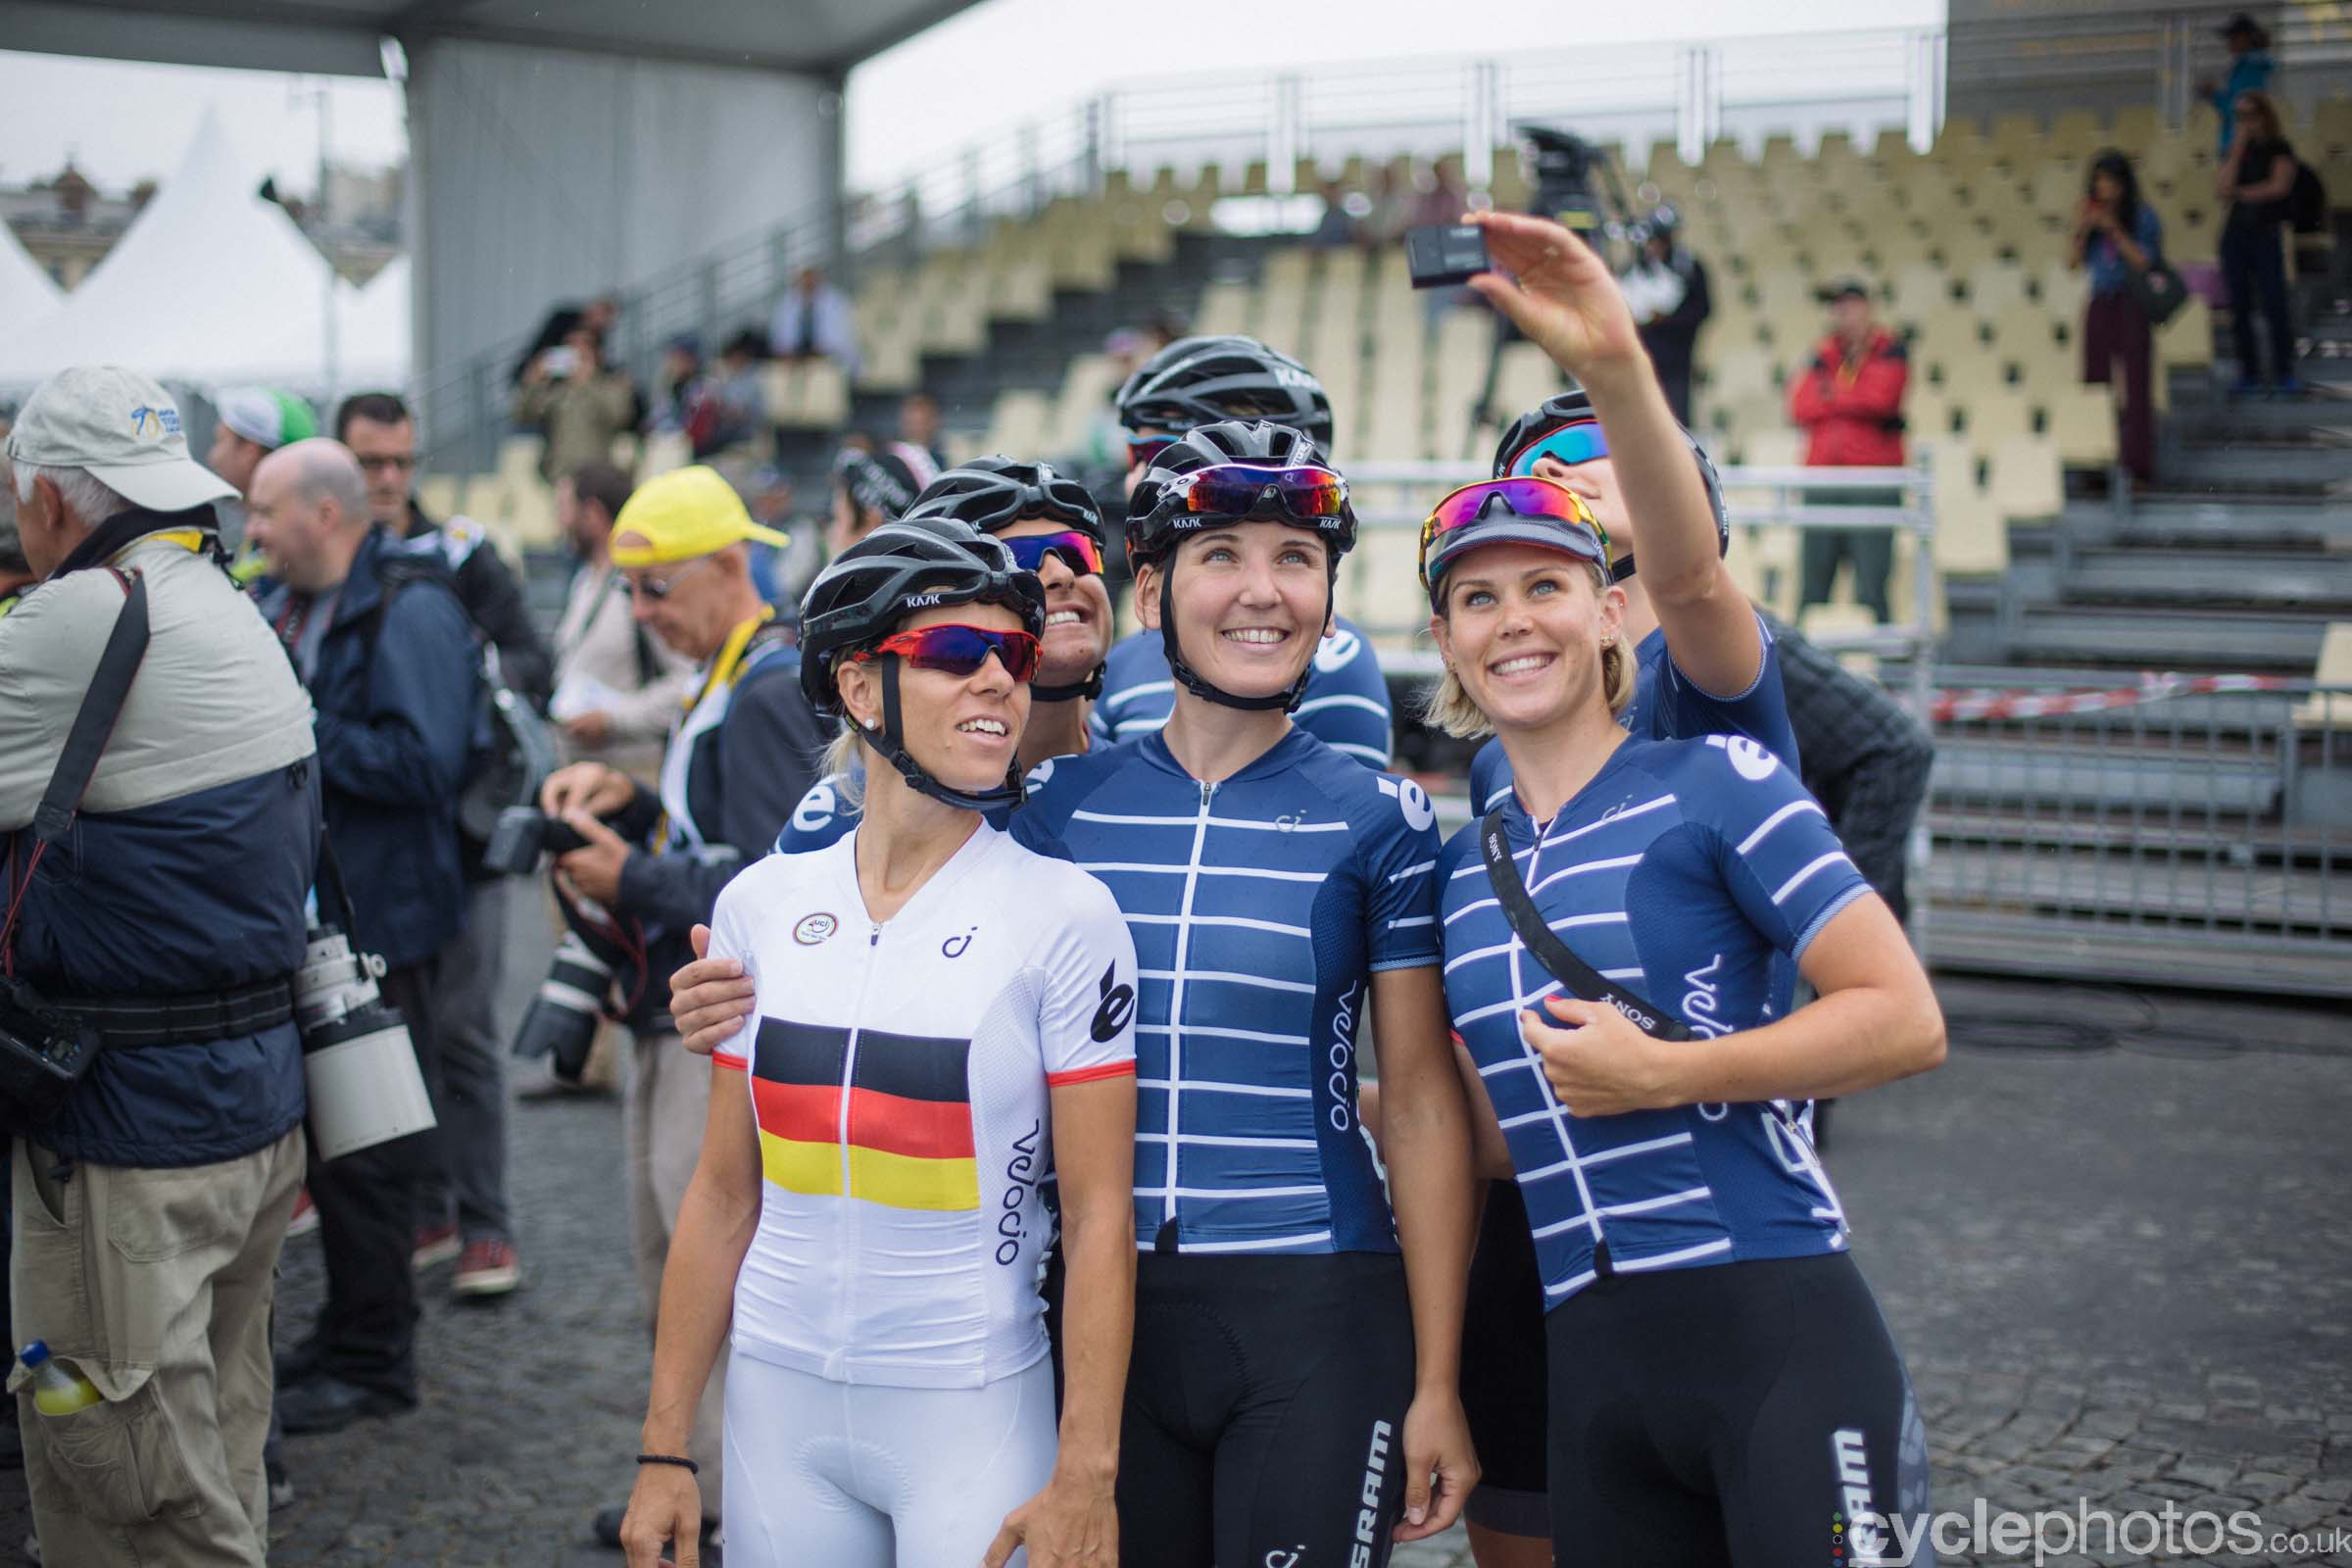 Team Velocio SRAM before the 2015 edition of the La Course by Le Tour women's road cycling race.